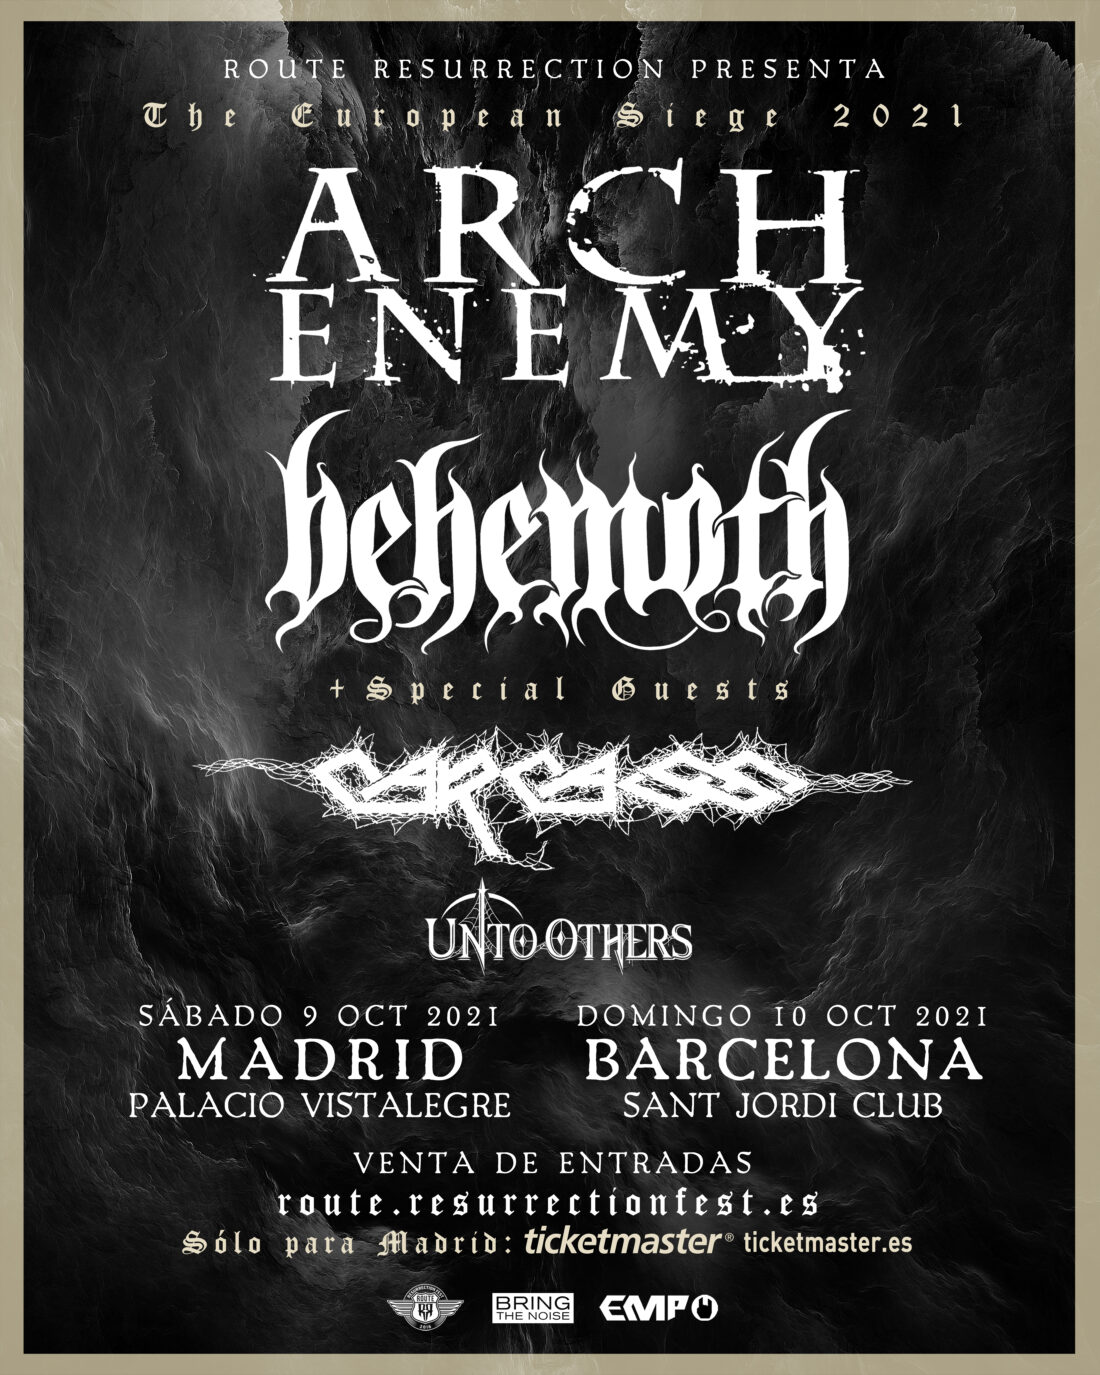 N-2021-10-09_-_RF21-Arch-Enemy-Behemoth-Carcass-Poster-1100x1375.jpg